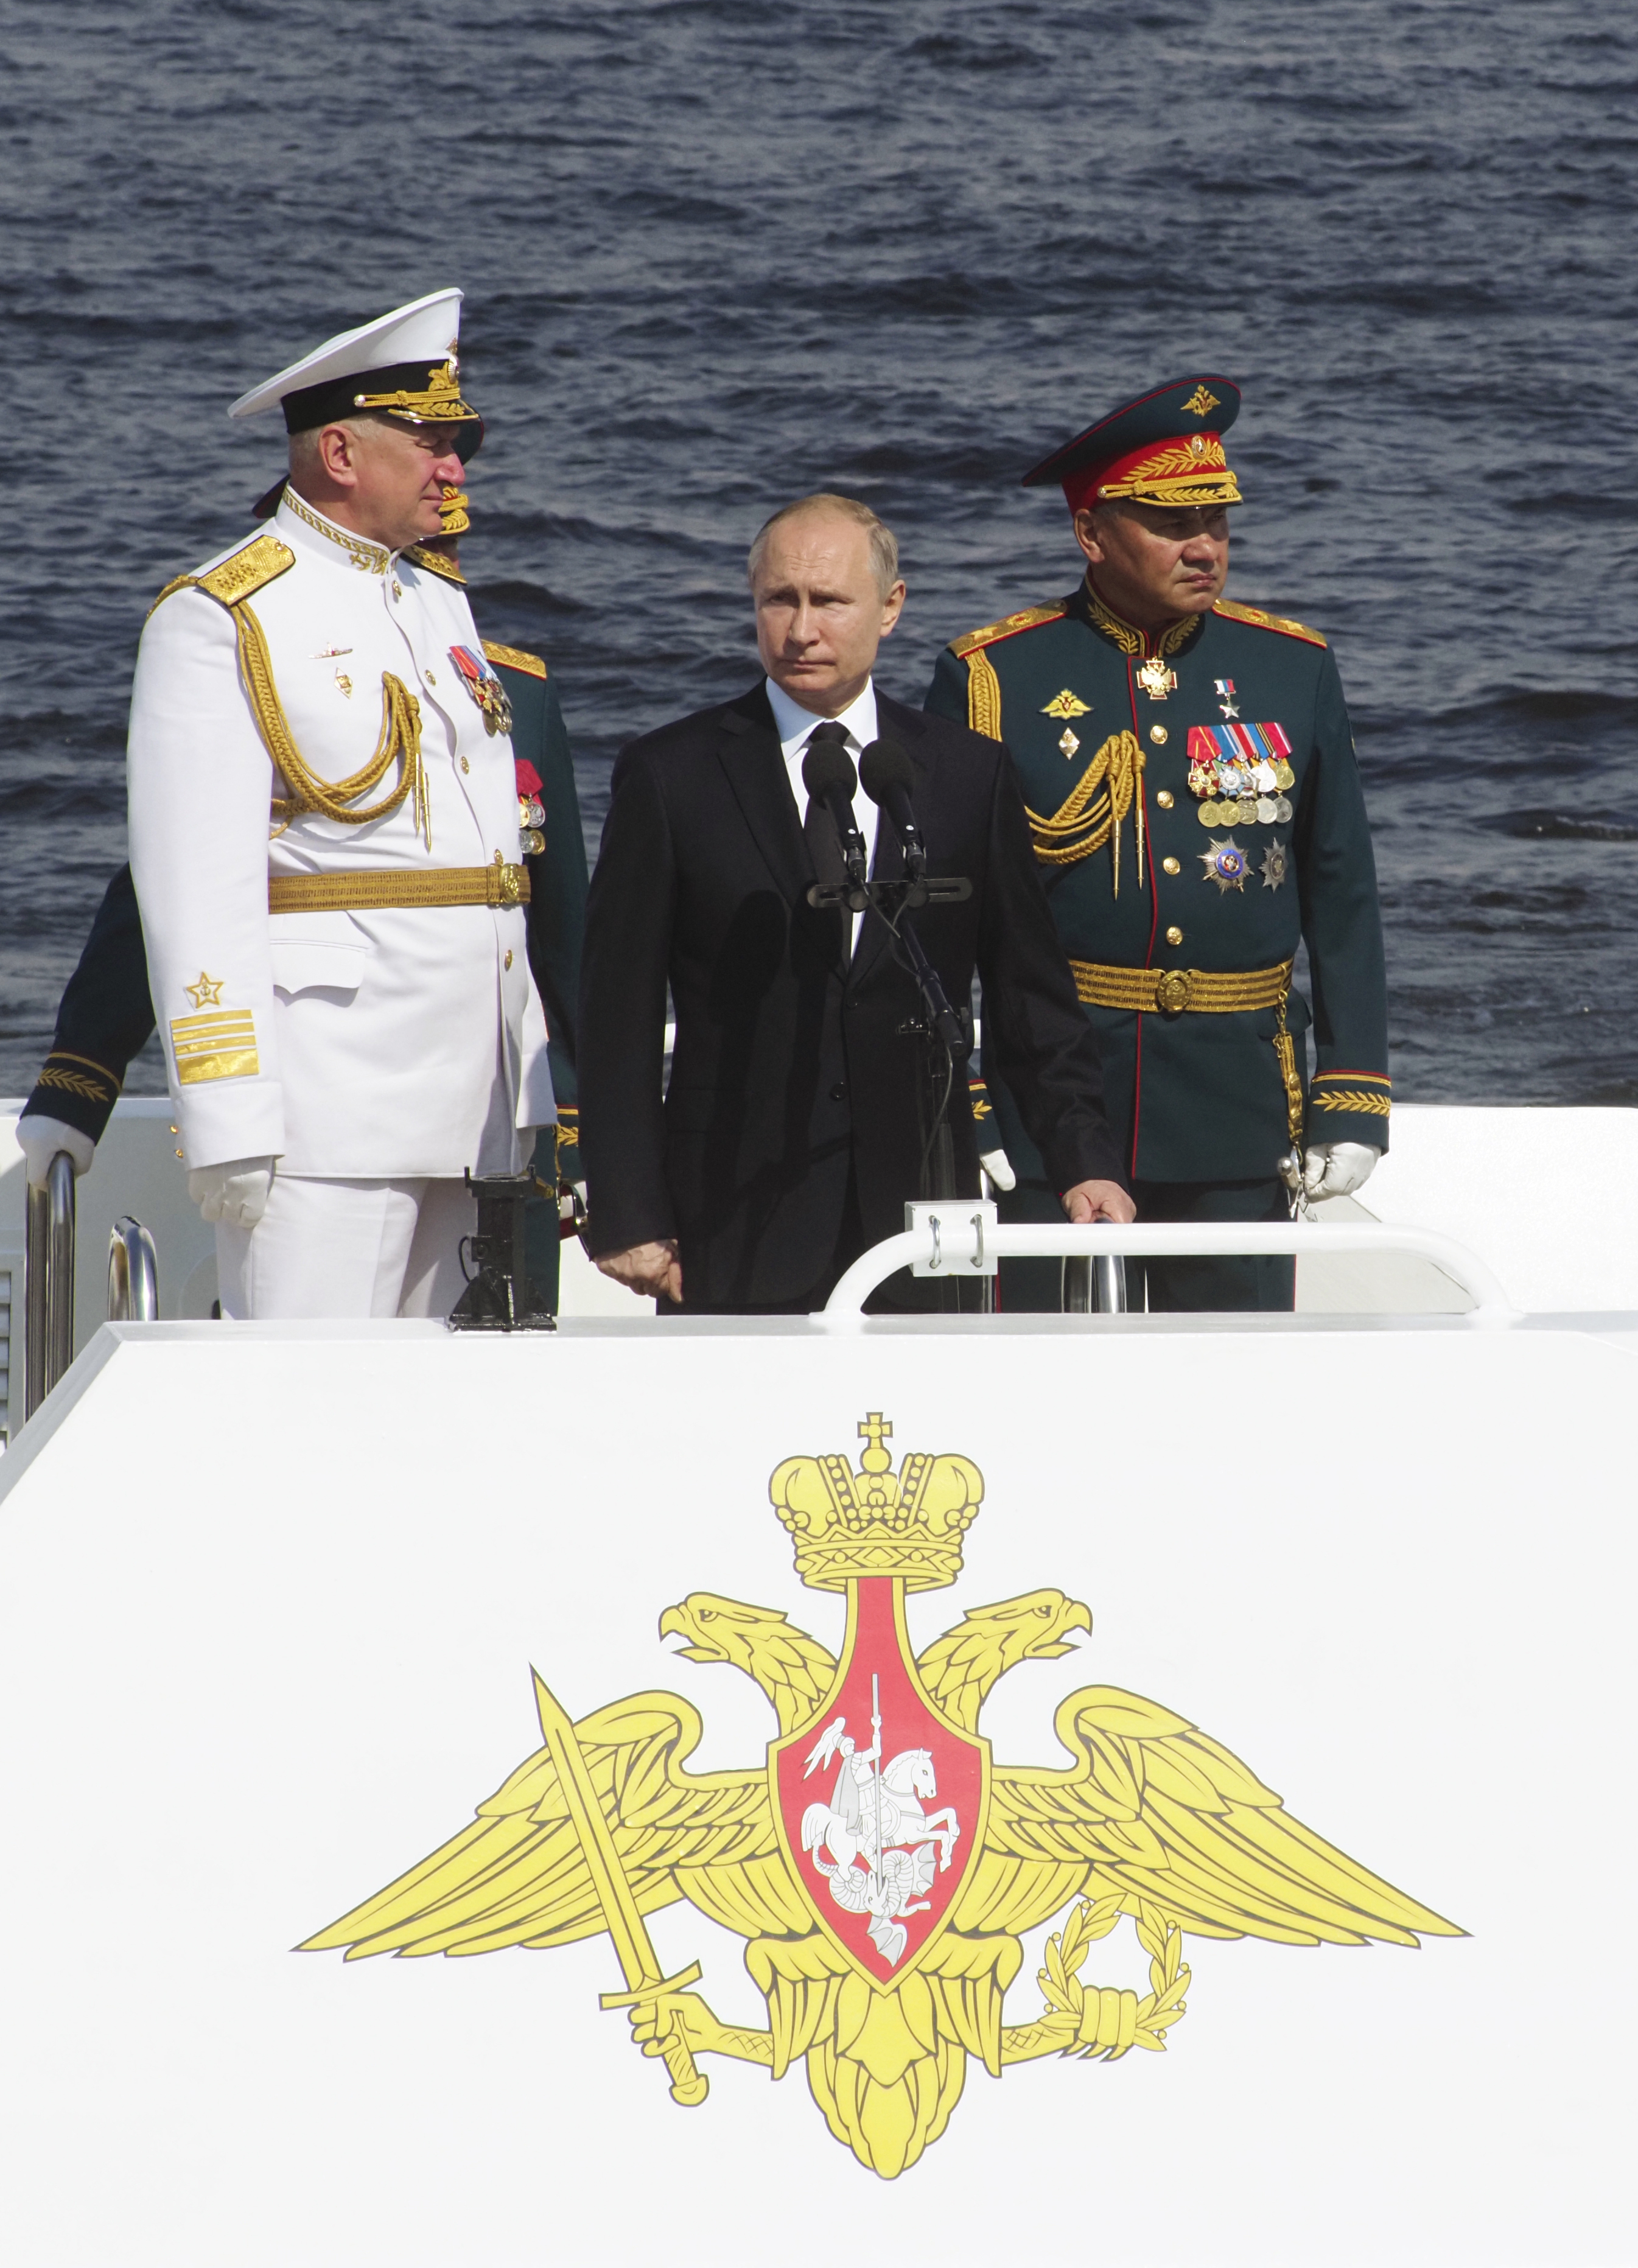 Putin leads Russian naval parade after crackdown in Moscow